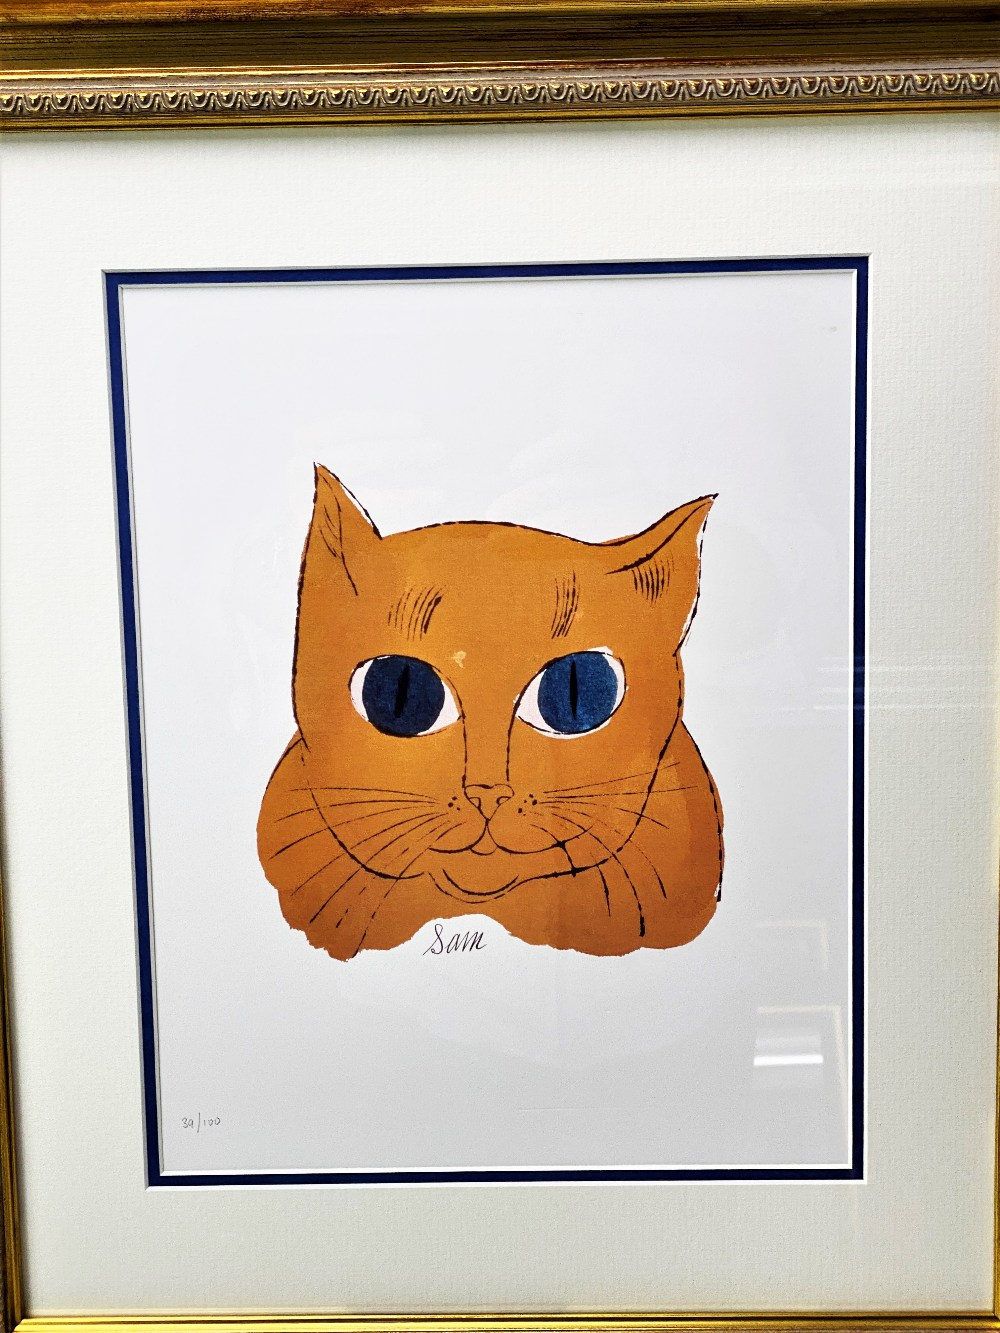 Andy Warhol 'Gold Sam' Lithograph Print/Ornate Framed - Image 2 of 5